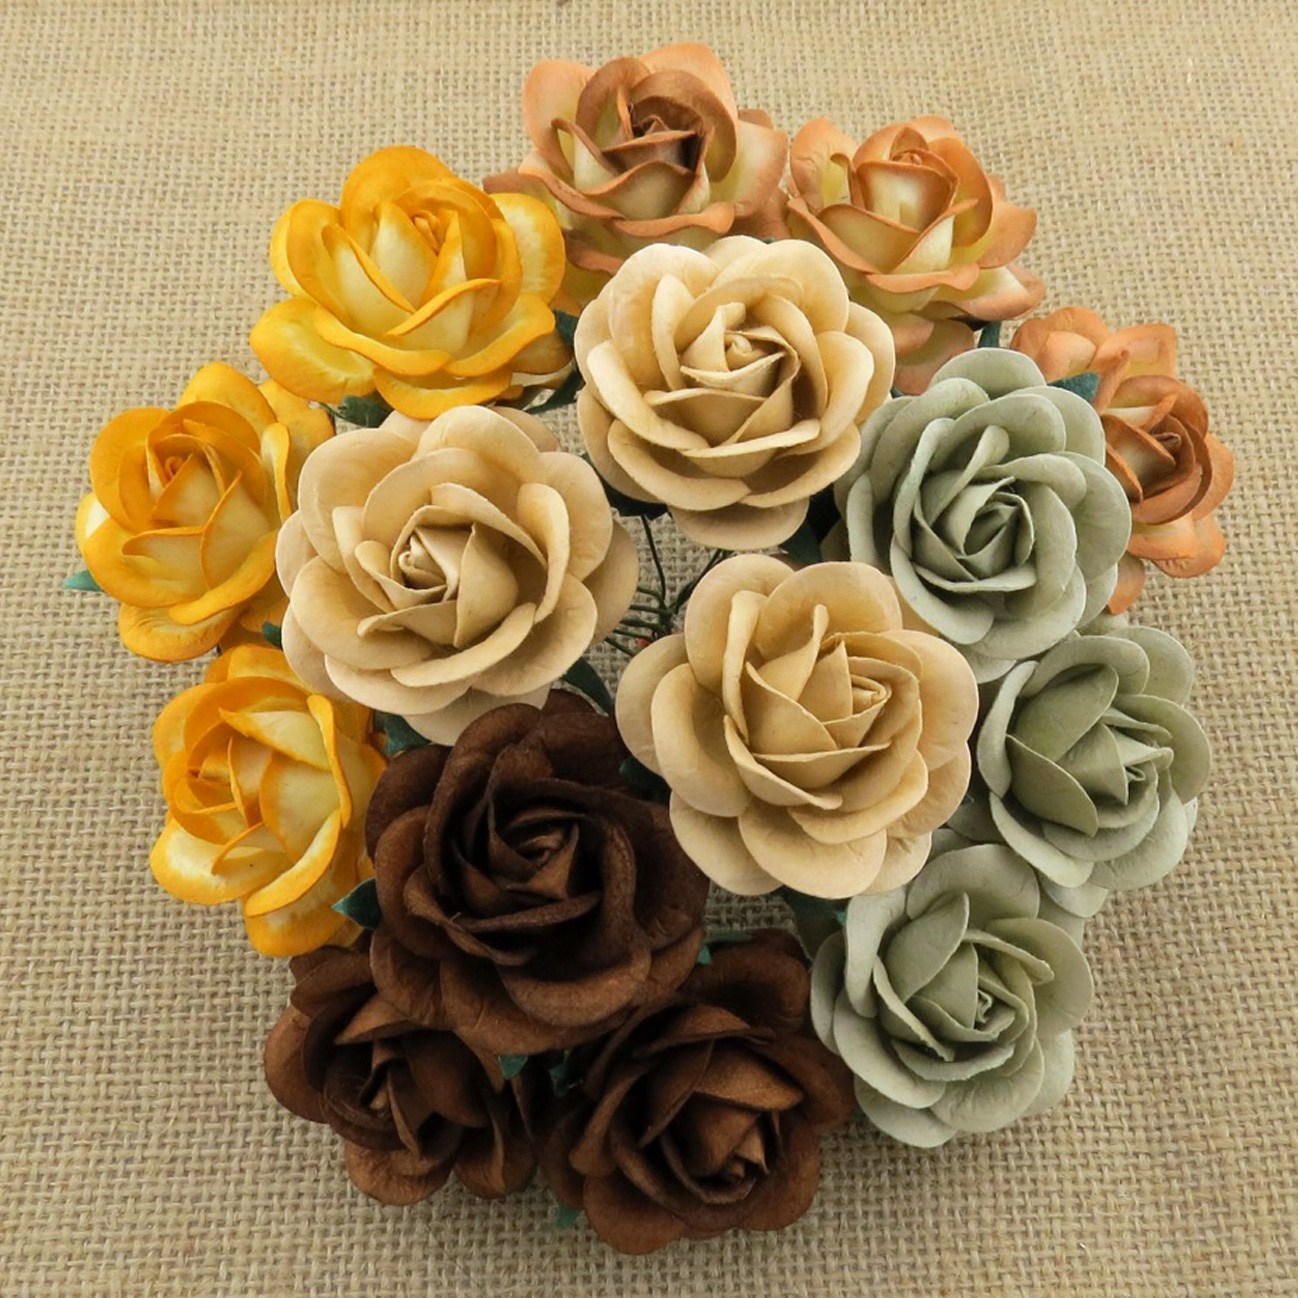 50 MIXED EARTH TONE MULBERRY PAPER TRELLIS ROSES - 5 COLOR